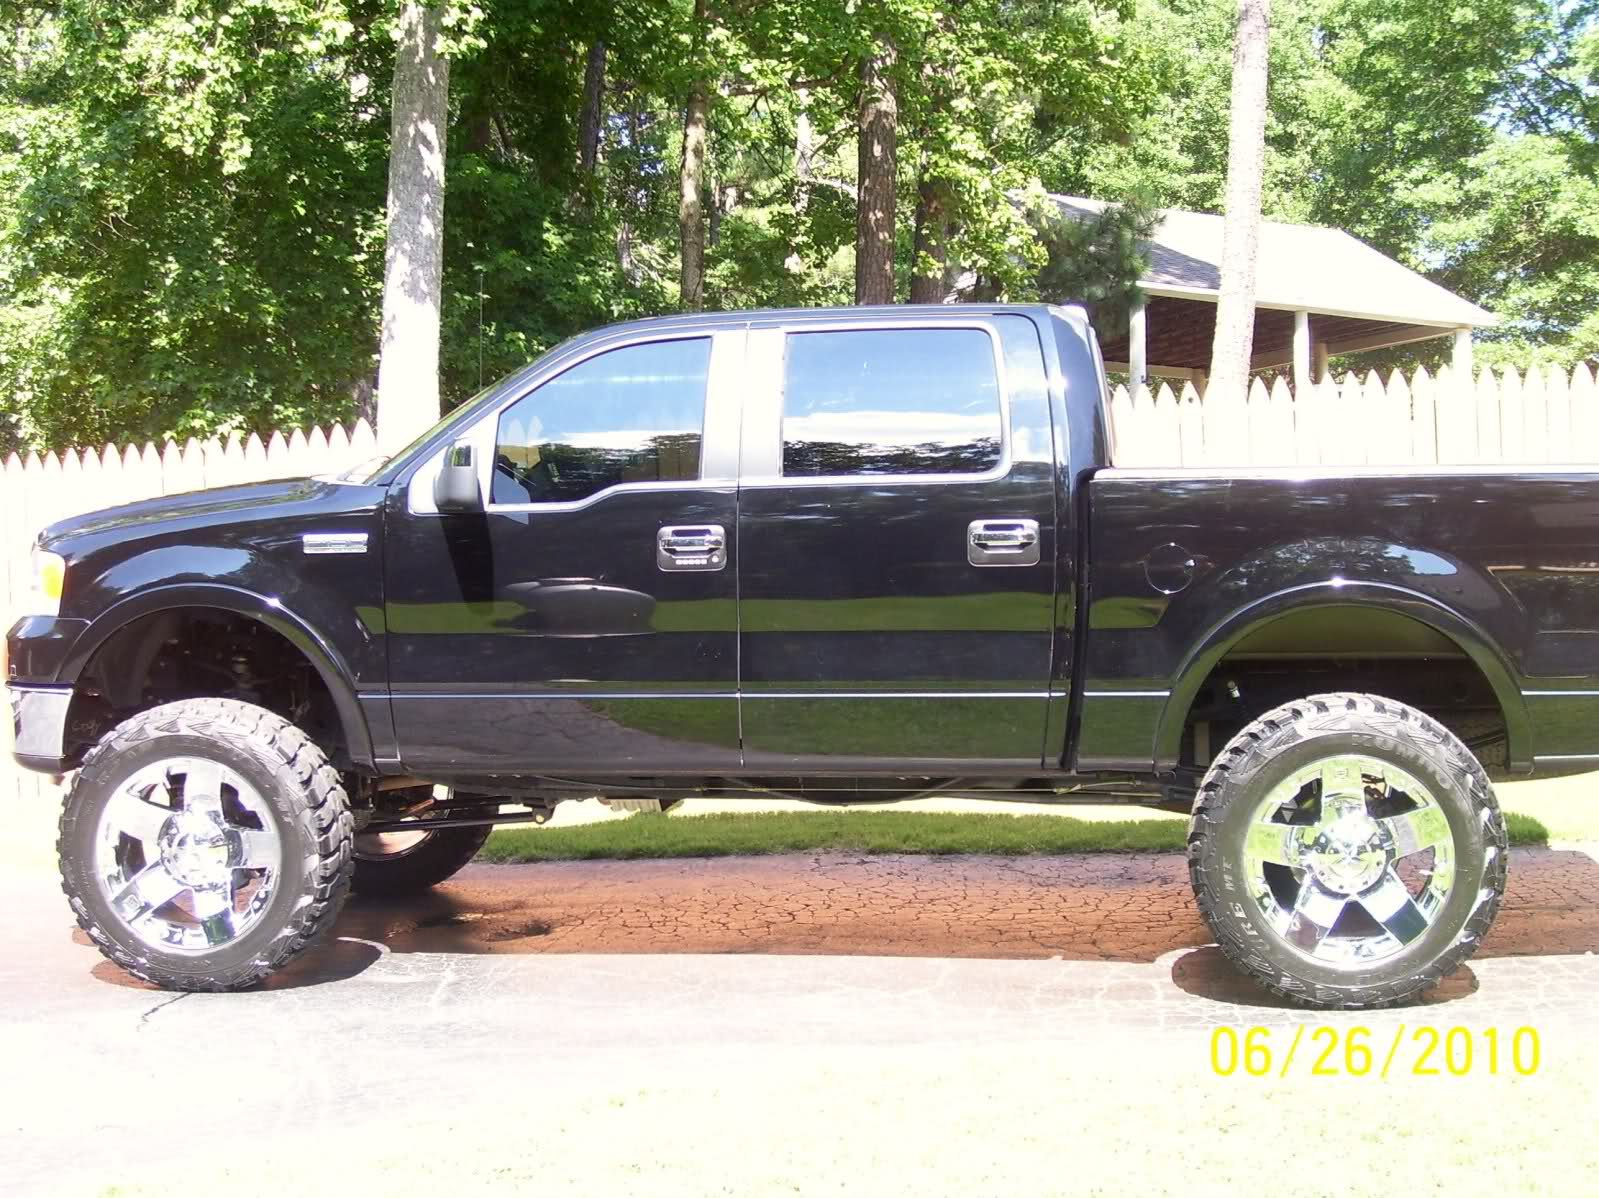 Ford ford 2006 f150 : 2006 Ford f150 Larait 4wd | The Outdoors Trader